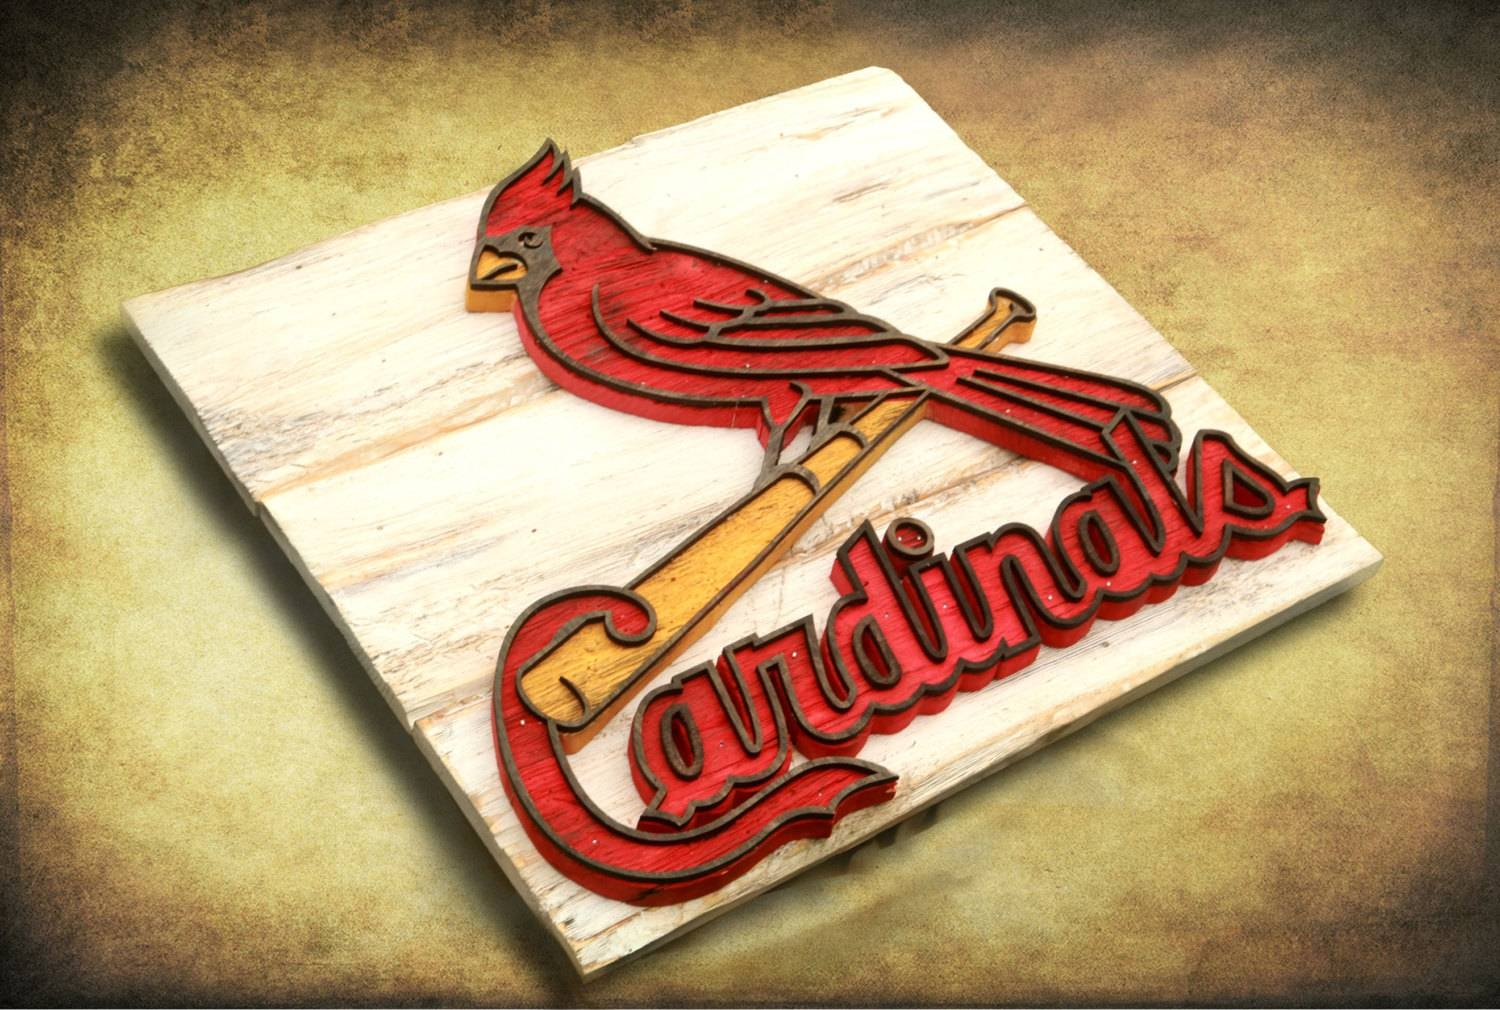 Saint Louis Cardinals Handmade Distressed Wood Sign, Vintage, Art Within Current Vintage Baseball Wall Art (View 19 of 30)